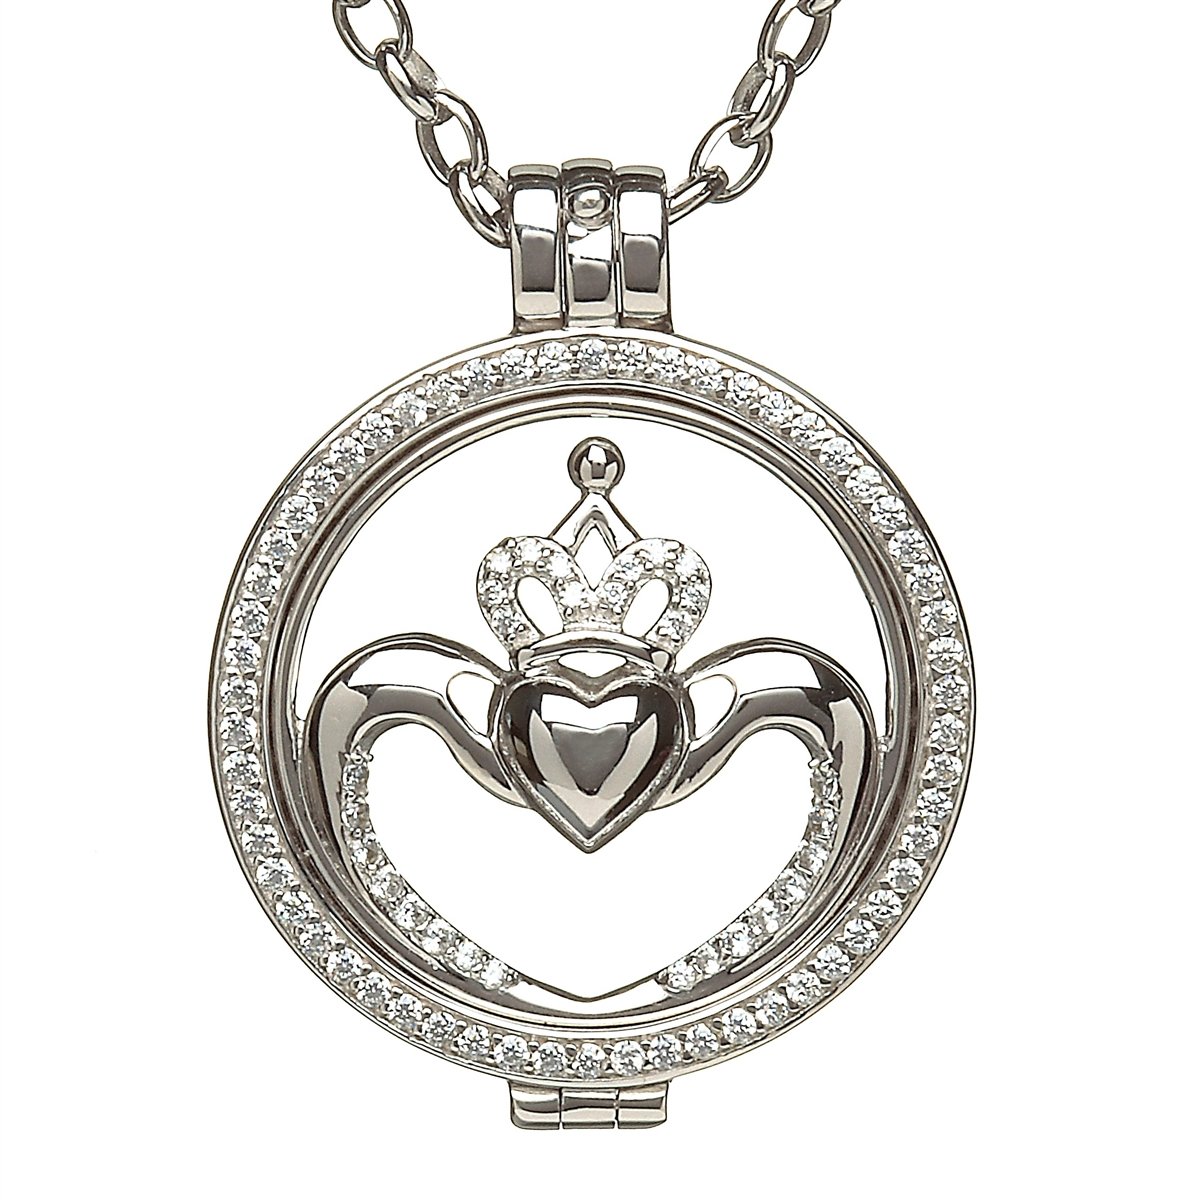 made childs sterling jewelry amazon claddagh dp pendant silver necklace child s com necklaces irish